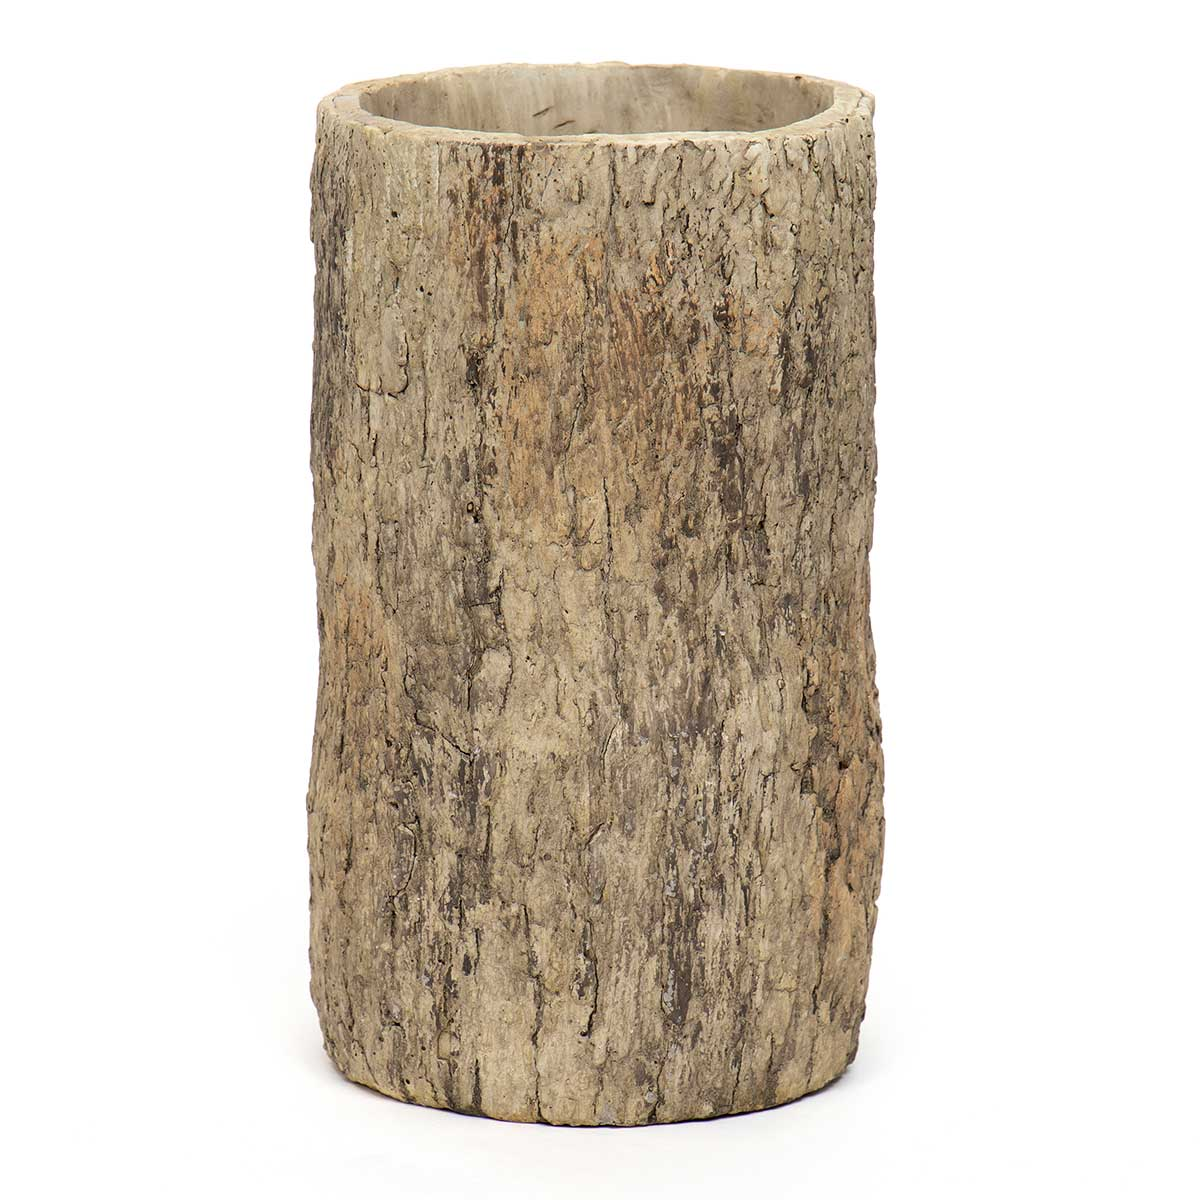 TALL ROUND CONCRETE LOG POT